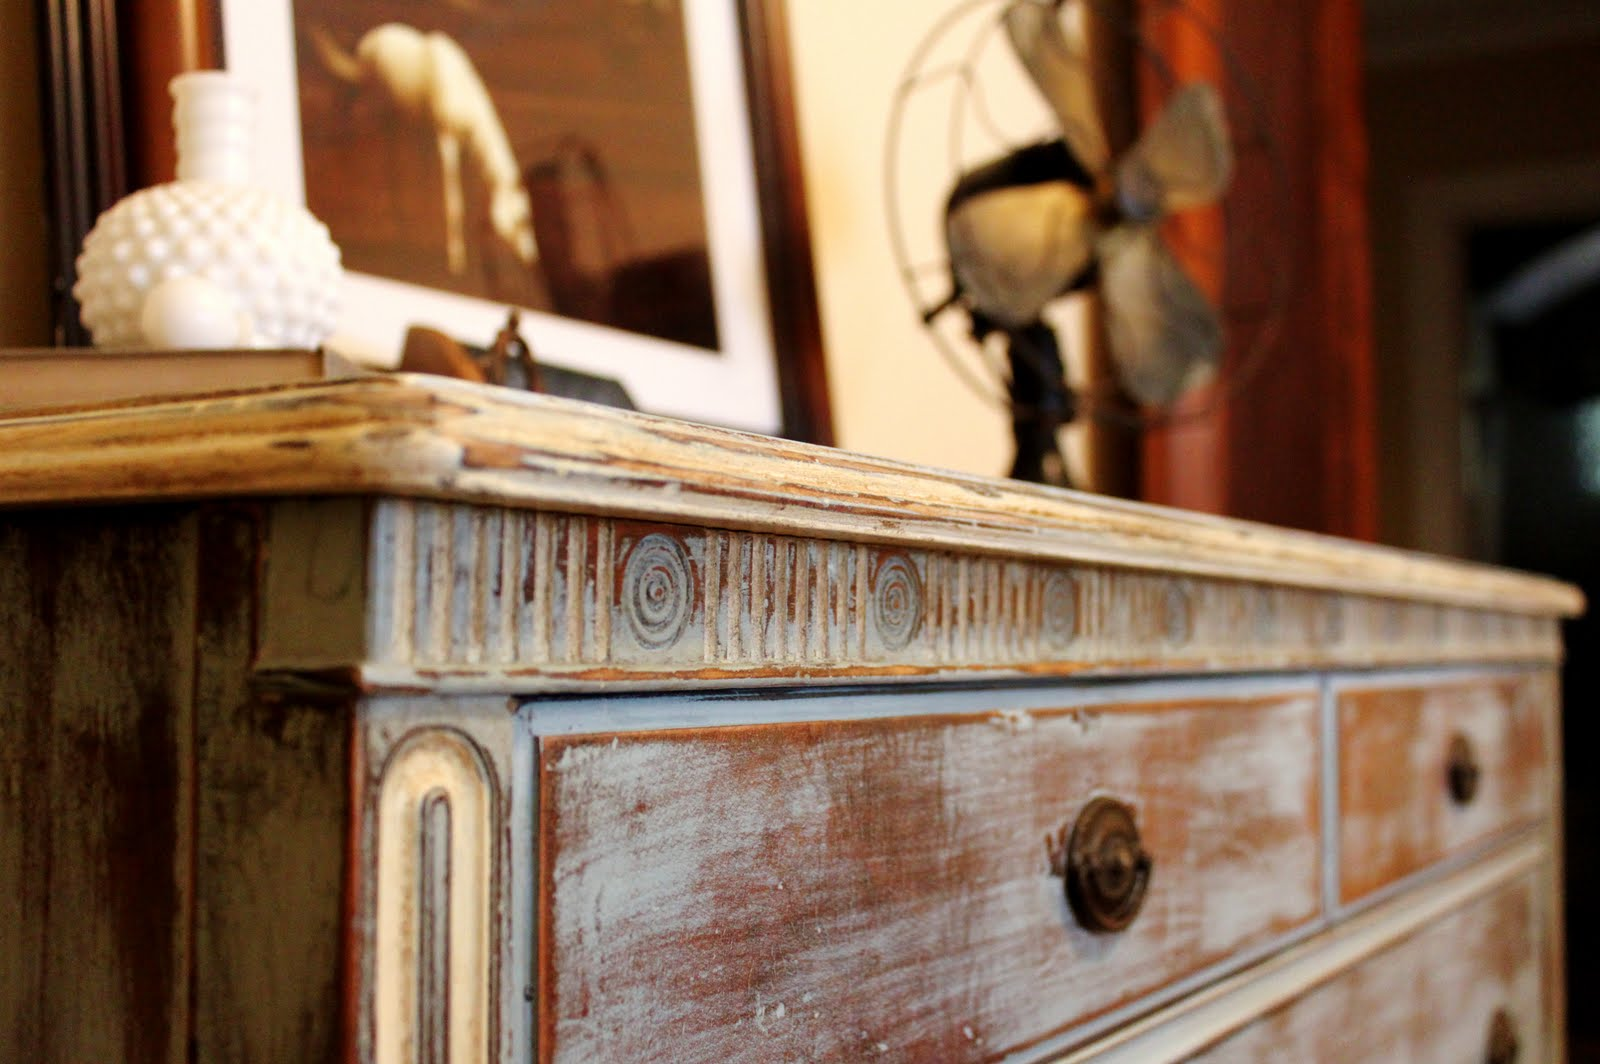 Confessions of a DIY-aholic: Heavily distressed dresser